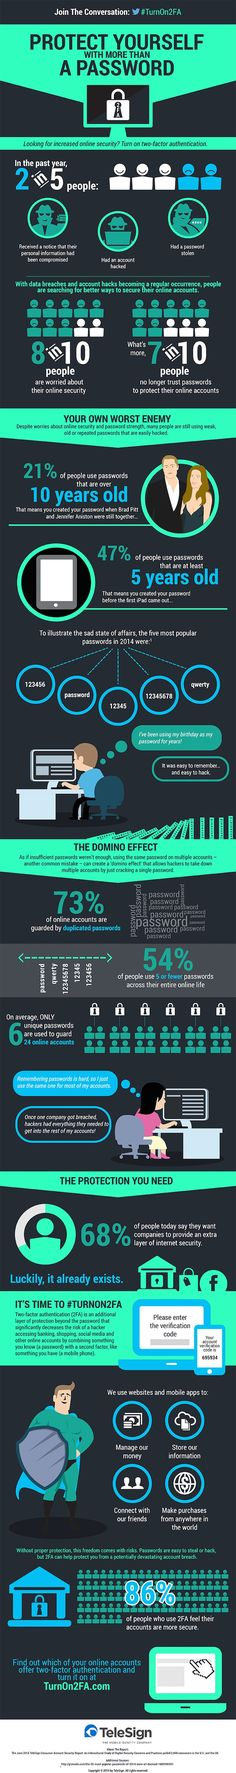 Password Statistics: The Good, the Bad, and the Ugly [Infographic], via @HubSpot